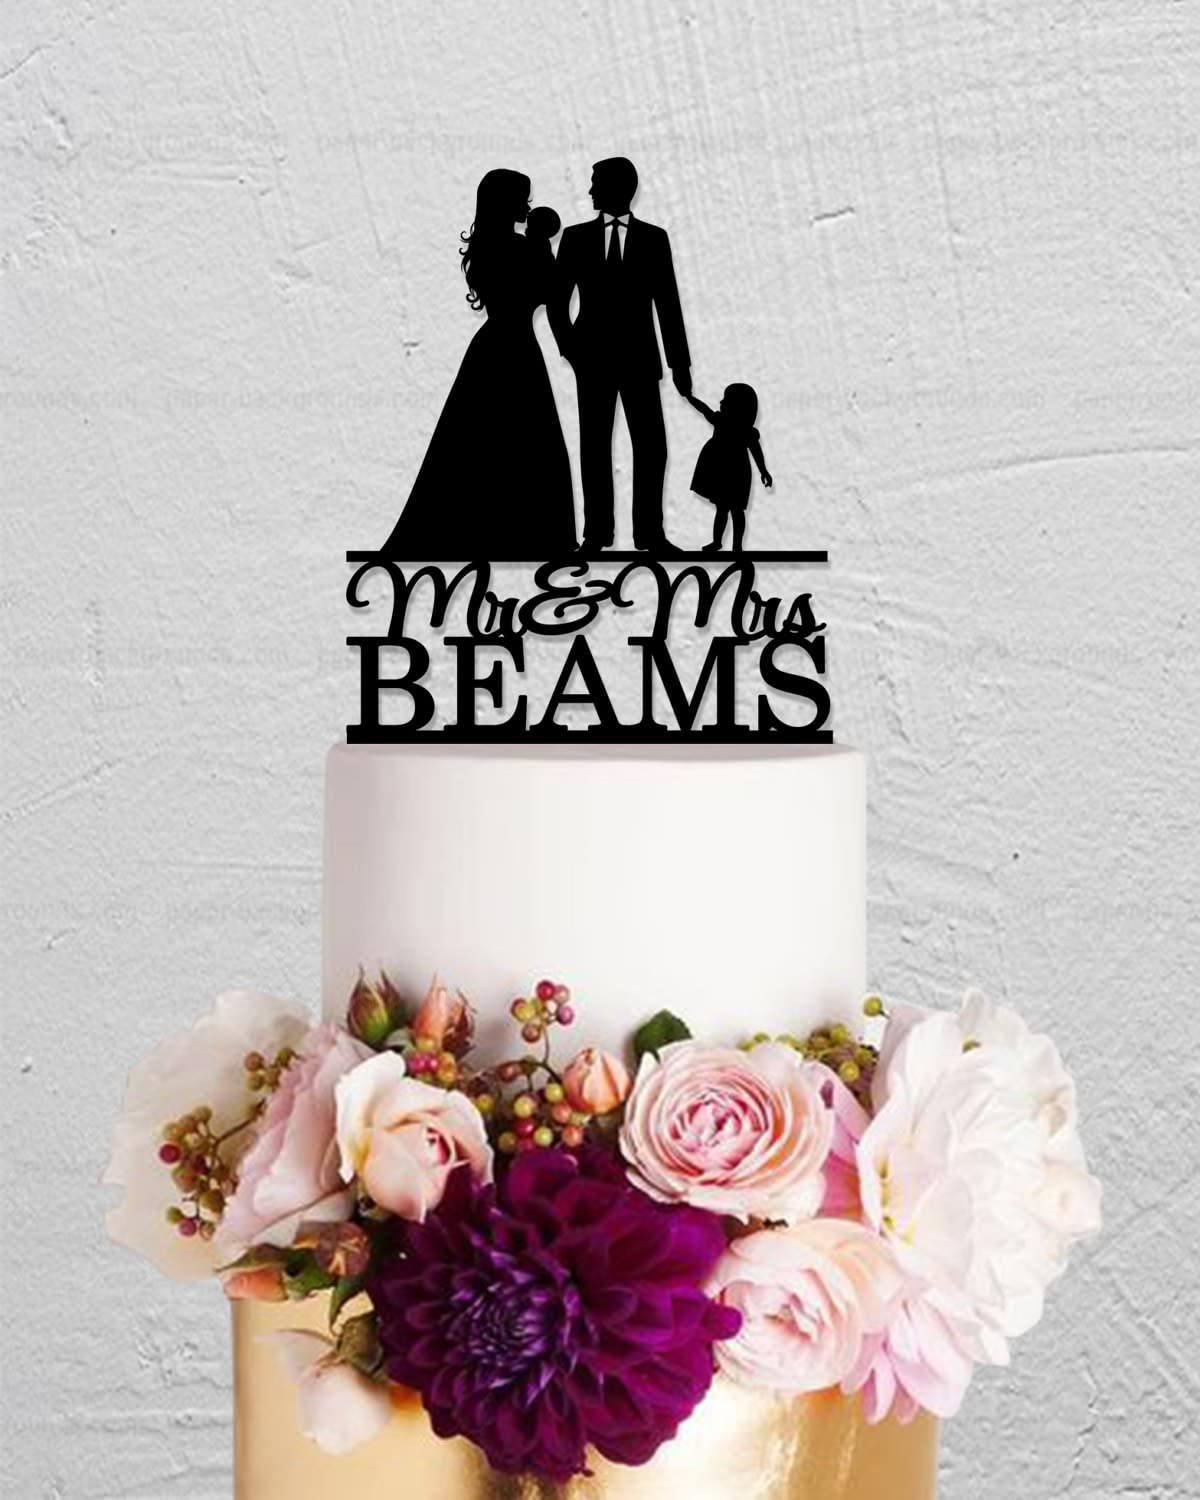 Wedding Cake Topper Family With Two Children Custom Bride And Groom Mr And Mrs Funny Wedding Cake Topper Bride And Groom Present For Wedding Decortions Rustic Bridal Shower Gifts Amazon Co Uk Kitchen